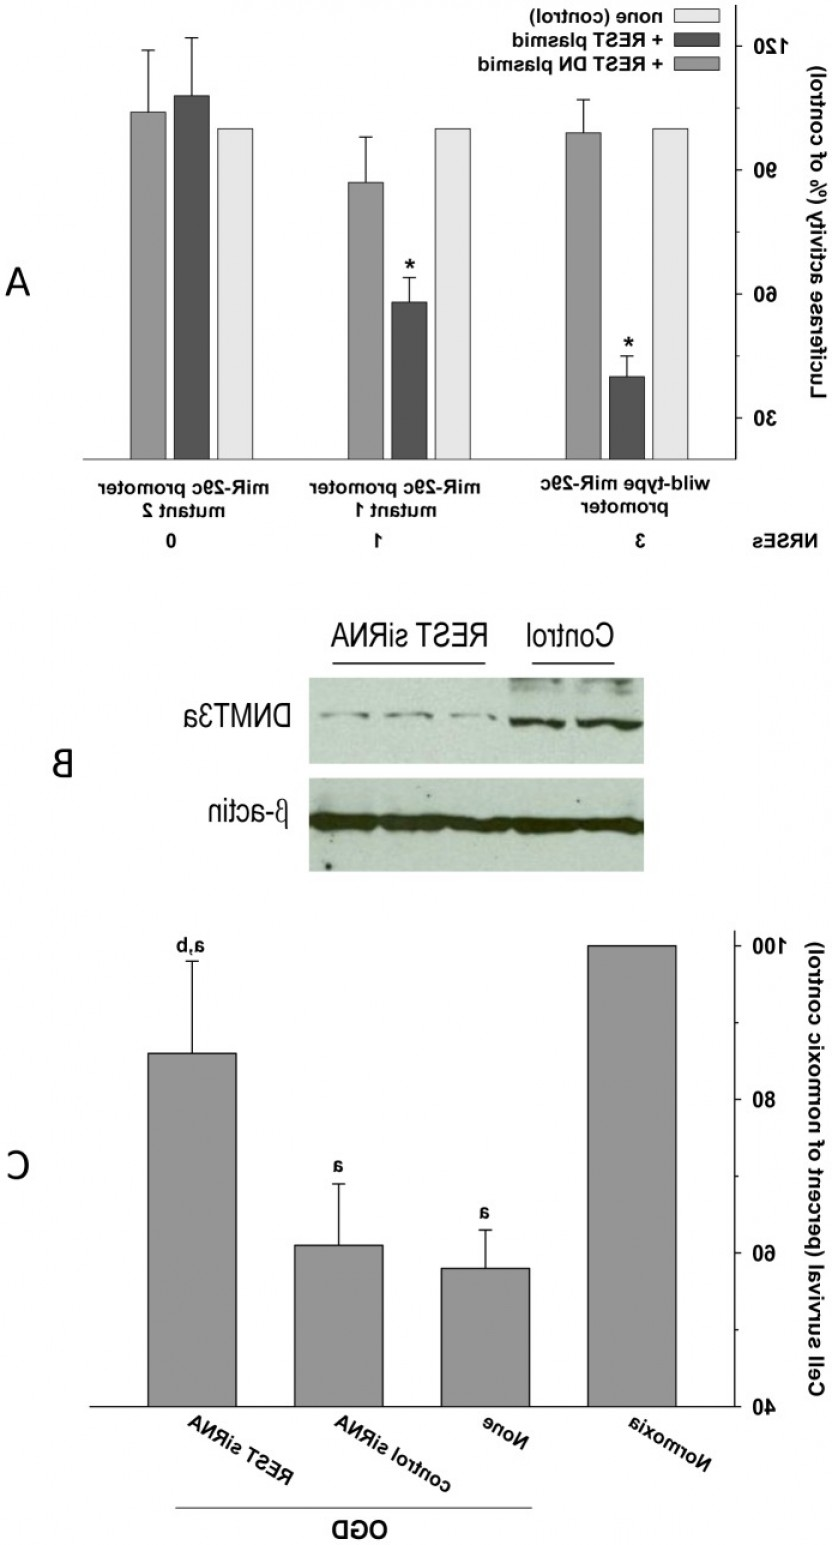 TSS Vector: The Mir C Promoter Has Upstream Binding Sites Within Kb From Tss For Thefig